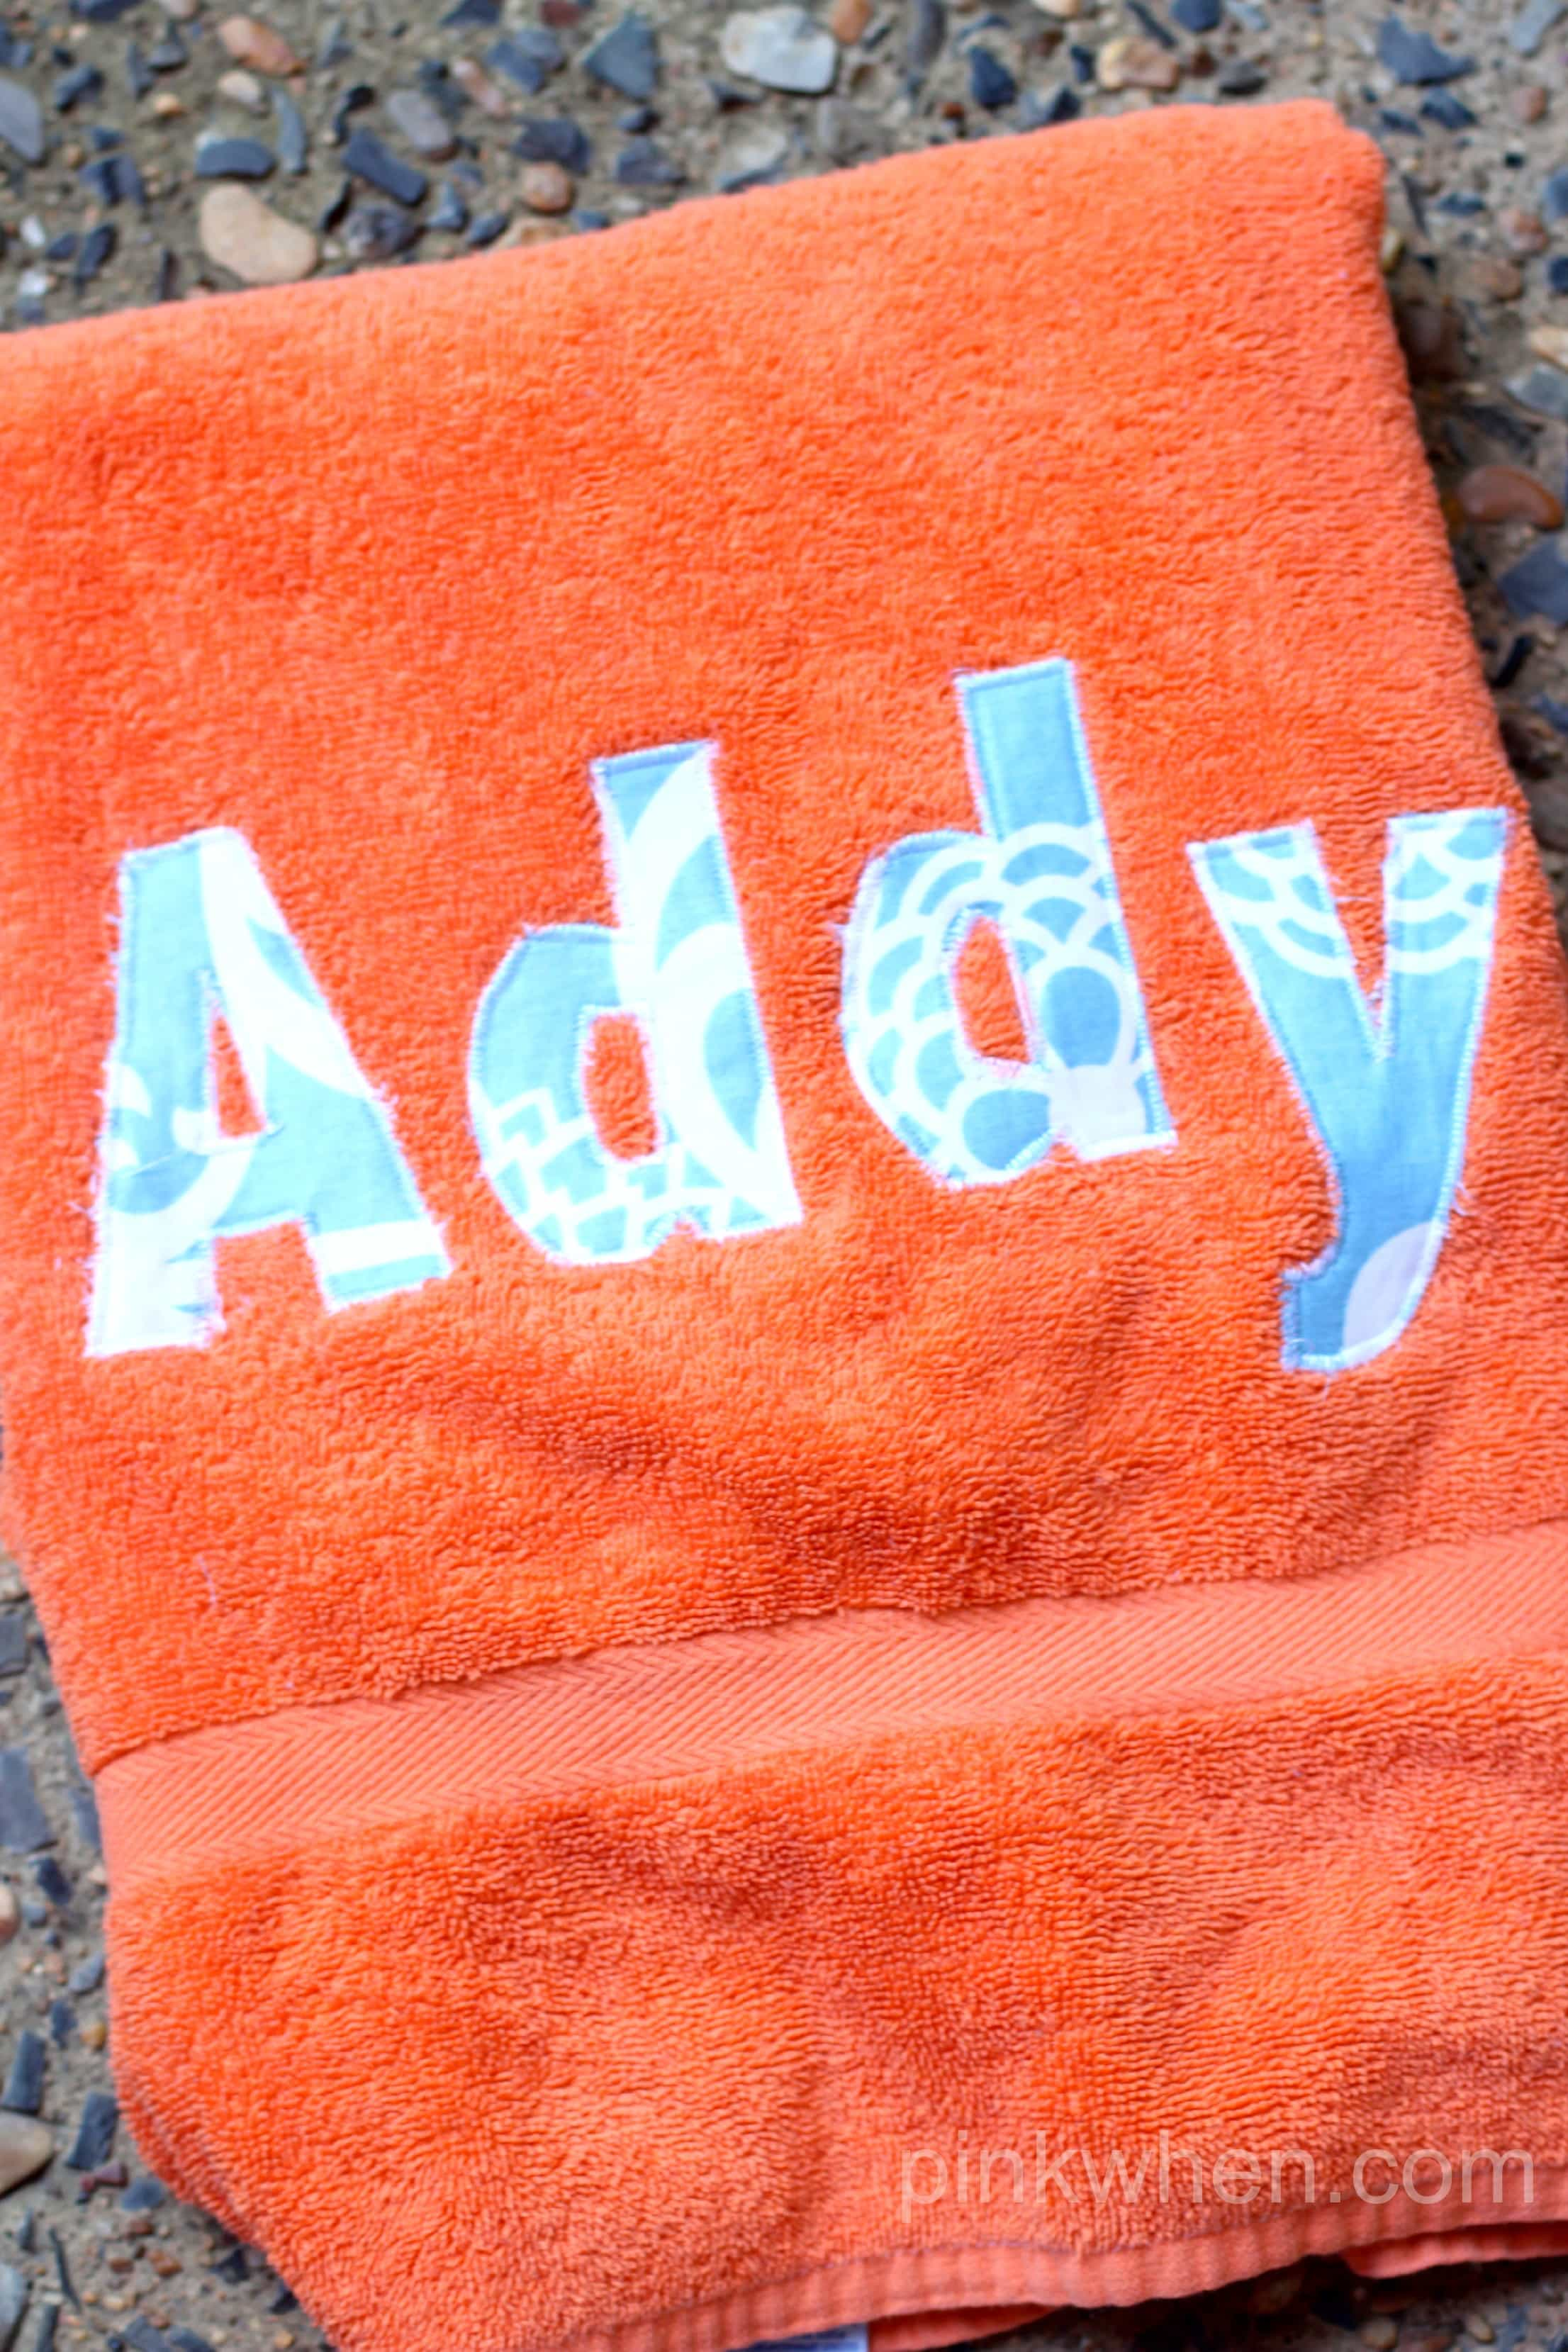 Easy DIY Personalized Pool Towel via PinkWhen.com